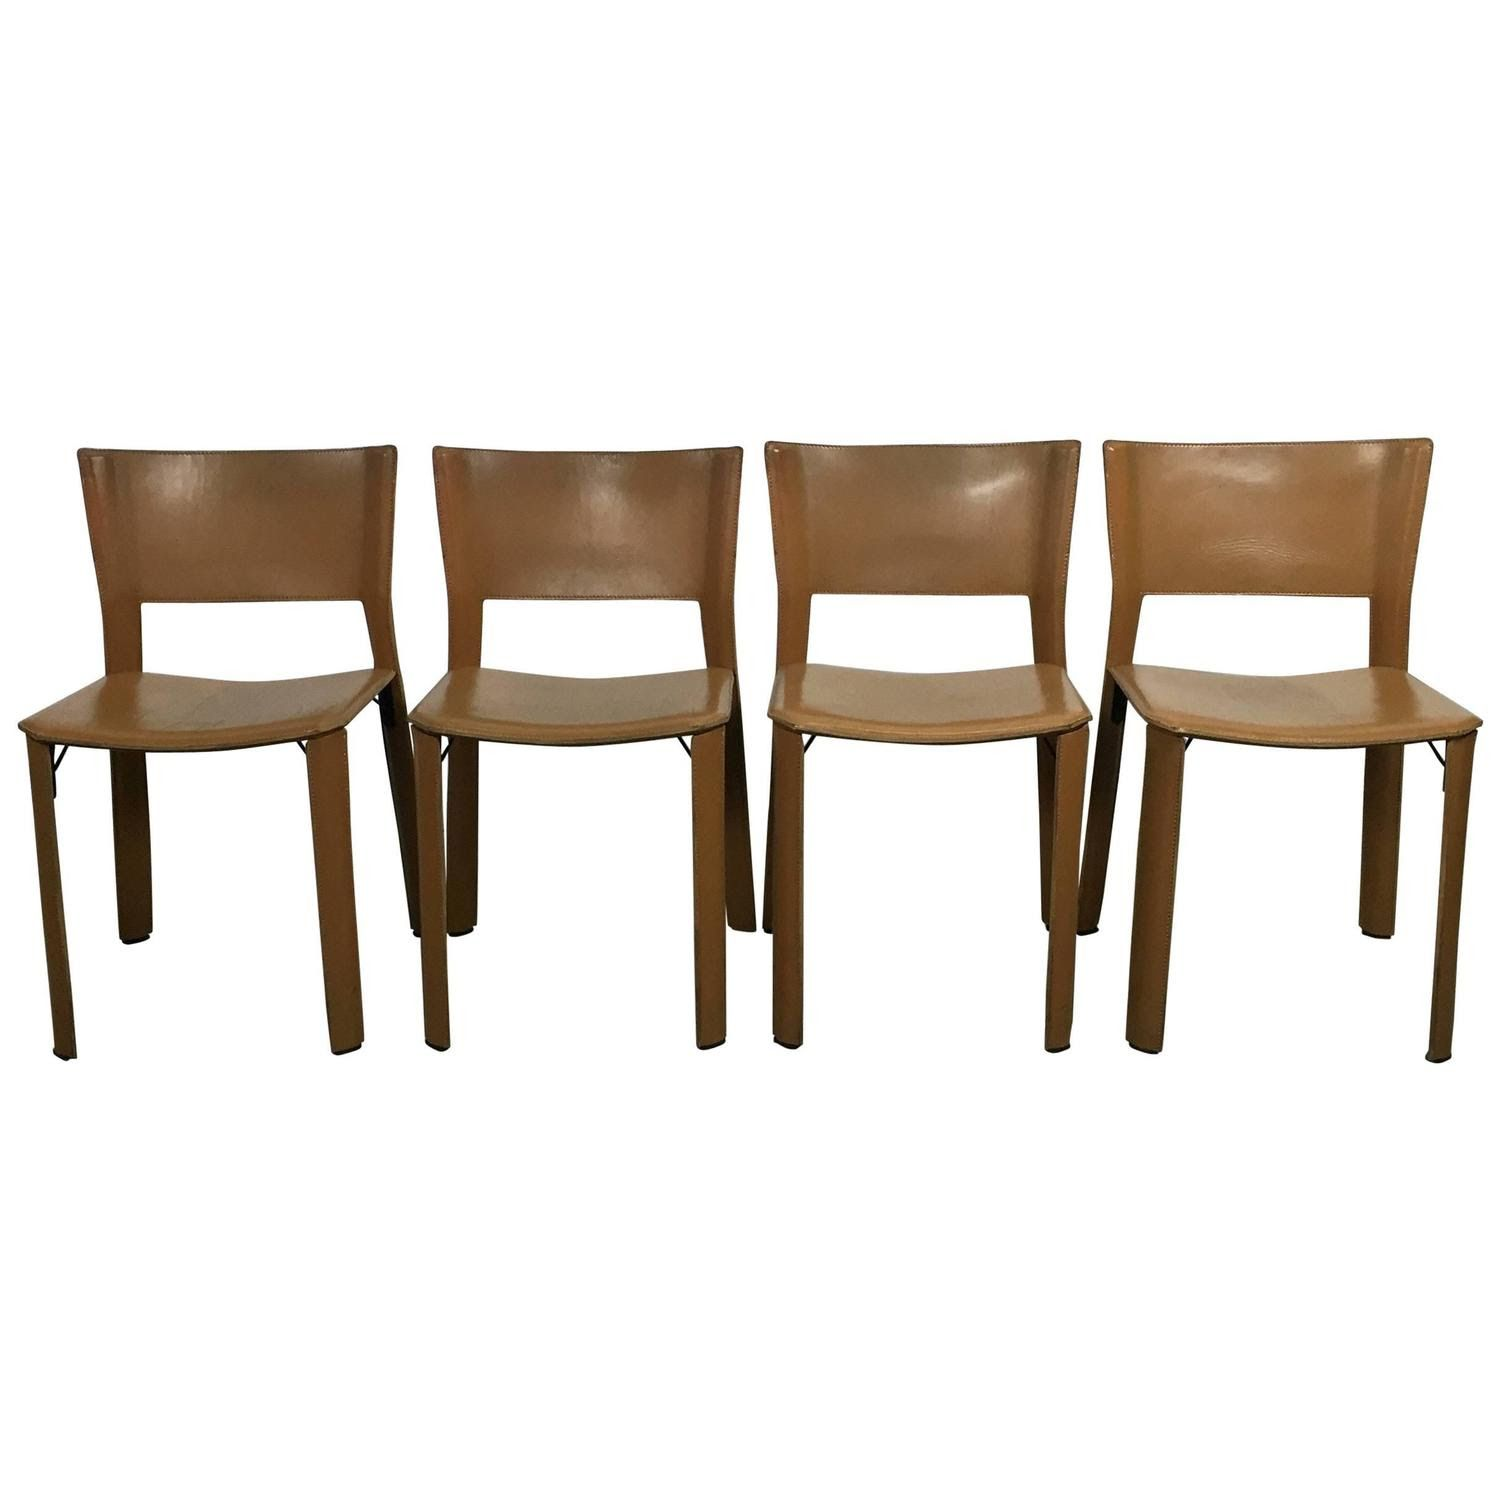 Set of Four Leather Giancarlo Vegni S91 Chairs for Fasem